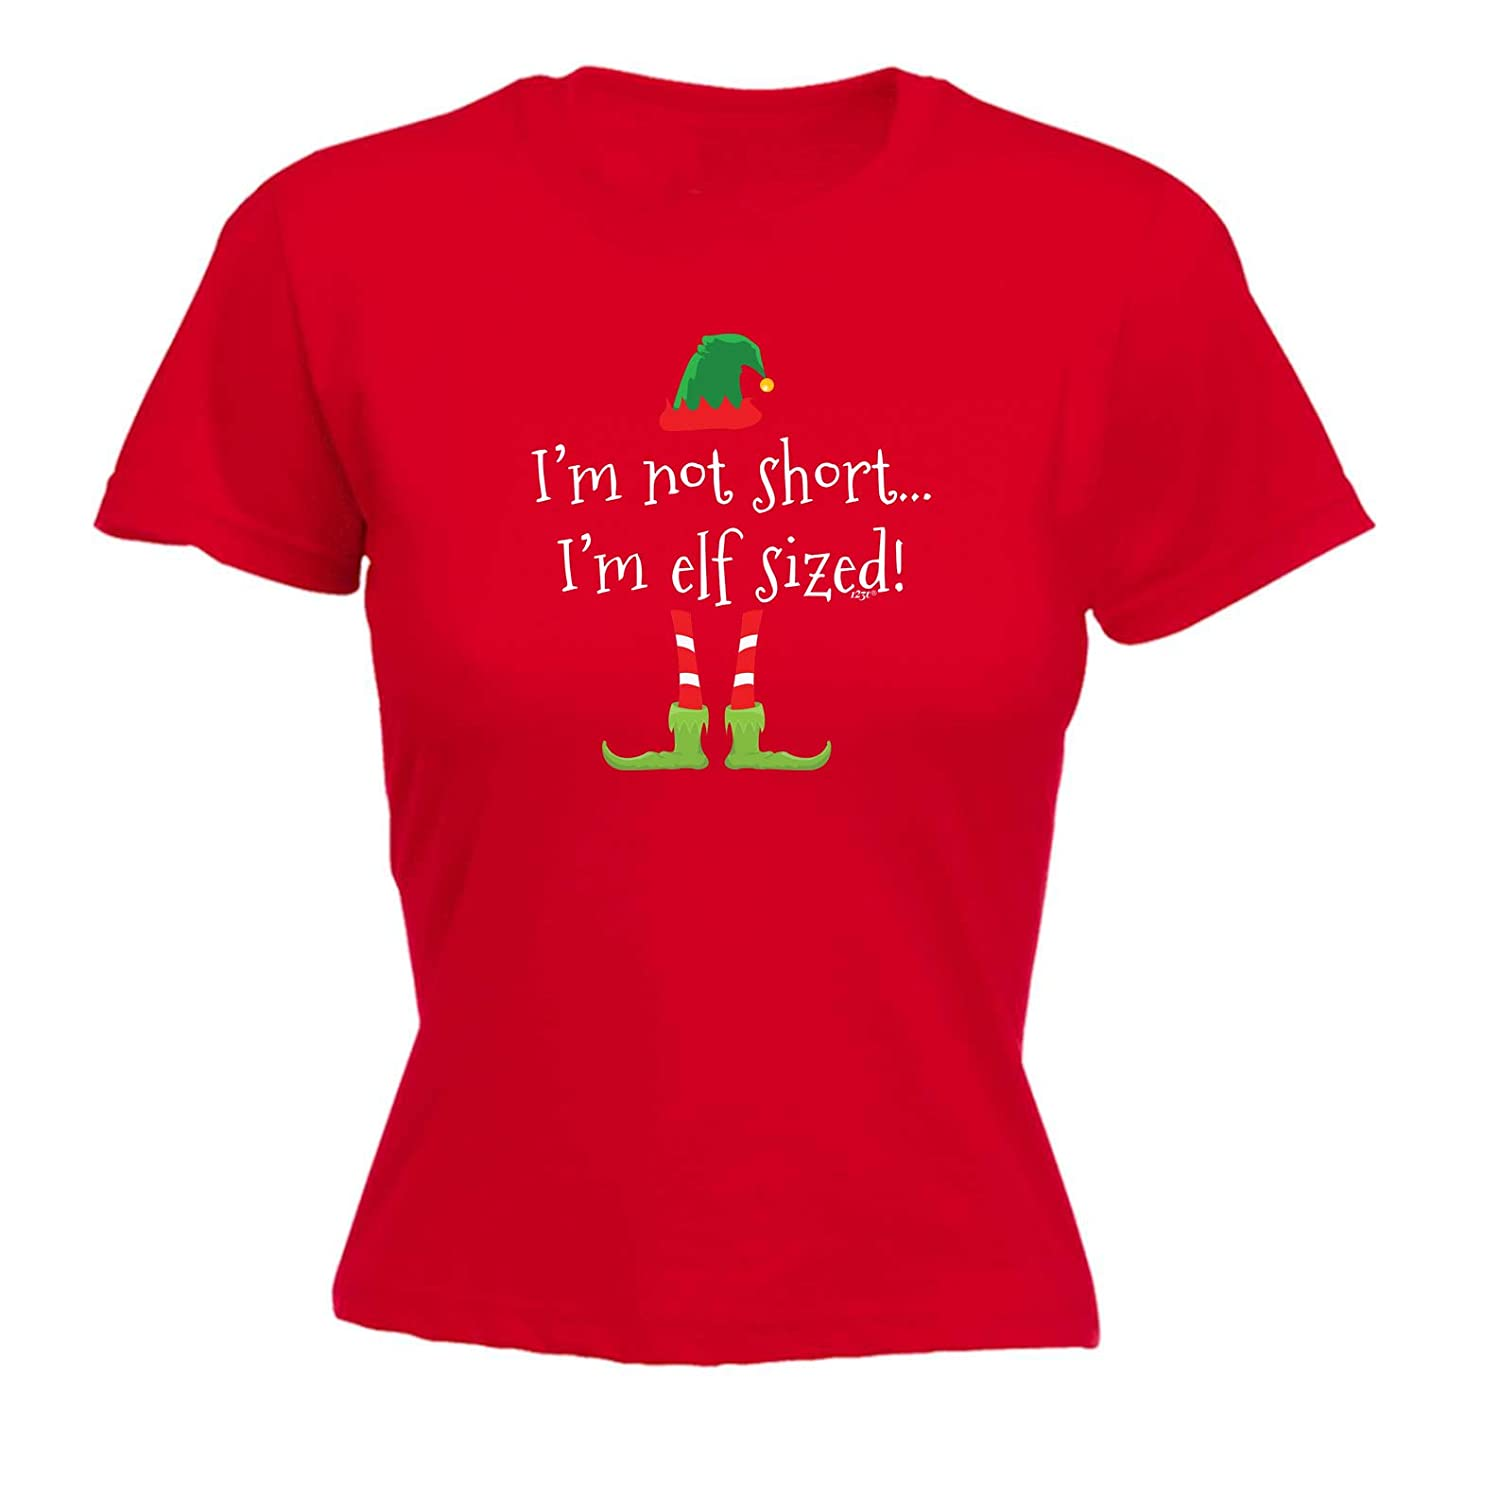 81f6e74a 123t Funny Tee - Elf Sized - Womens Fitted Cotton T-Shirt Top T Shirt:  Amazon.co.uk: Clothing